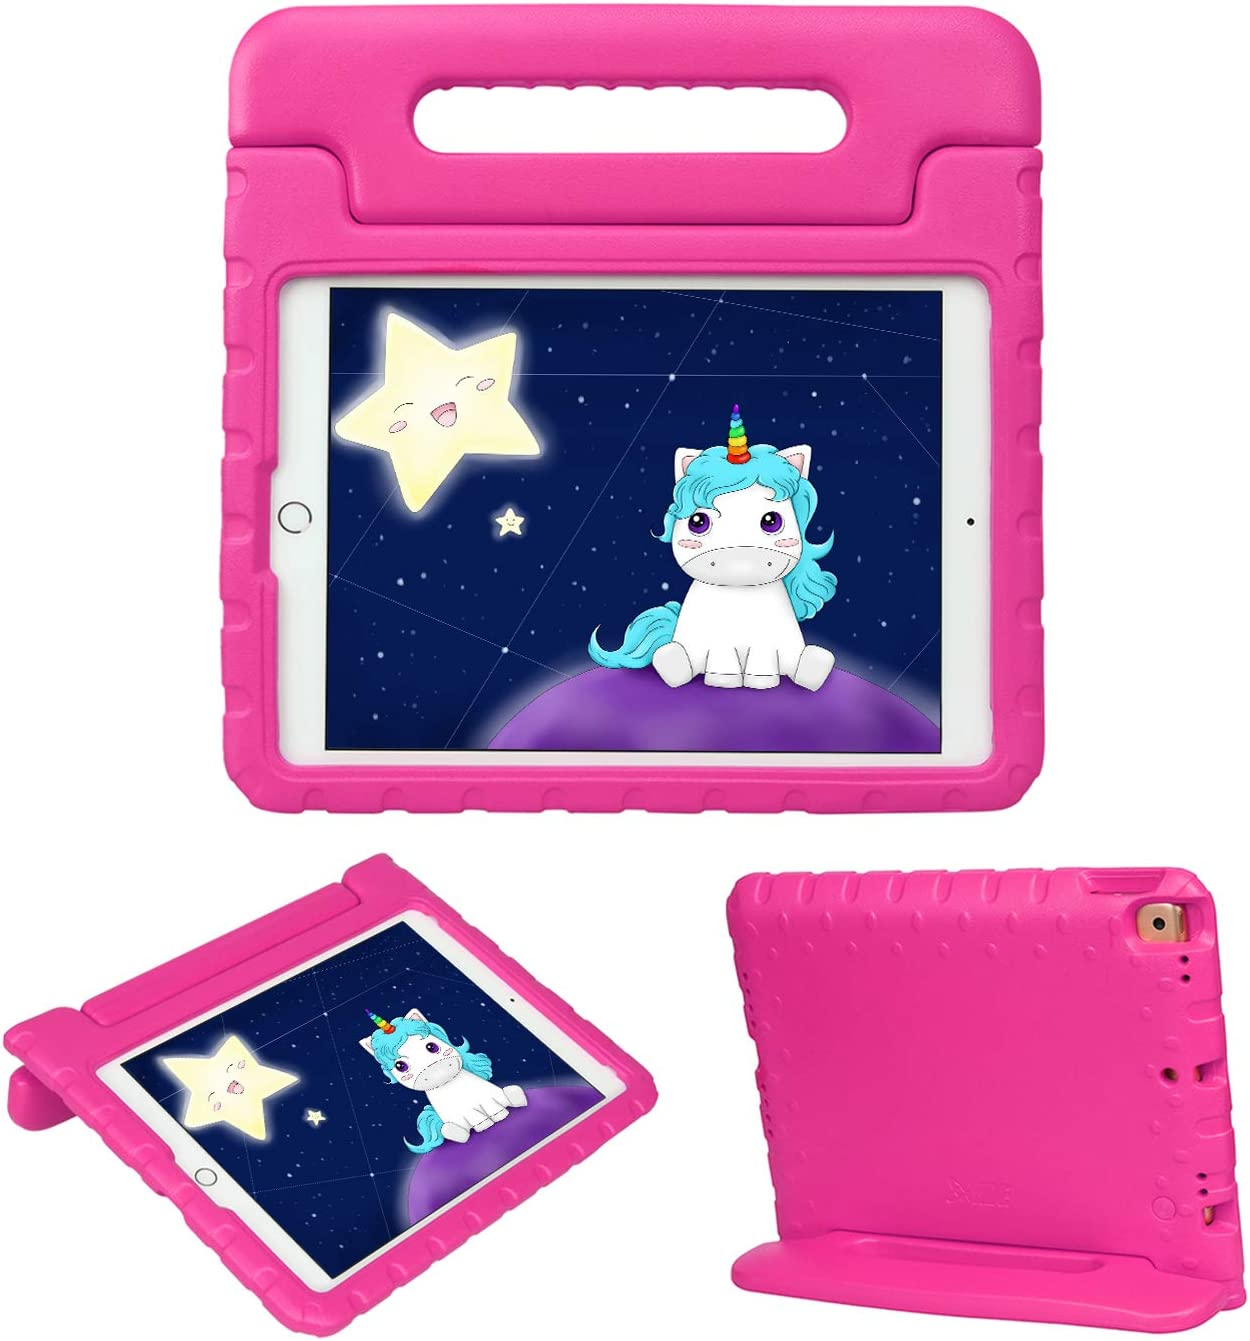 HDE iPad 8th Generation Case for Kids – Shock Proof iPad Cover 7th Generation 10.2 - iPad 10.2 Kids Case with Handle Stand for 7th/8th Generation Apple iPad - Hot Pink